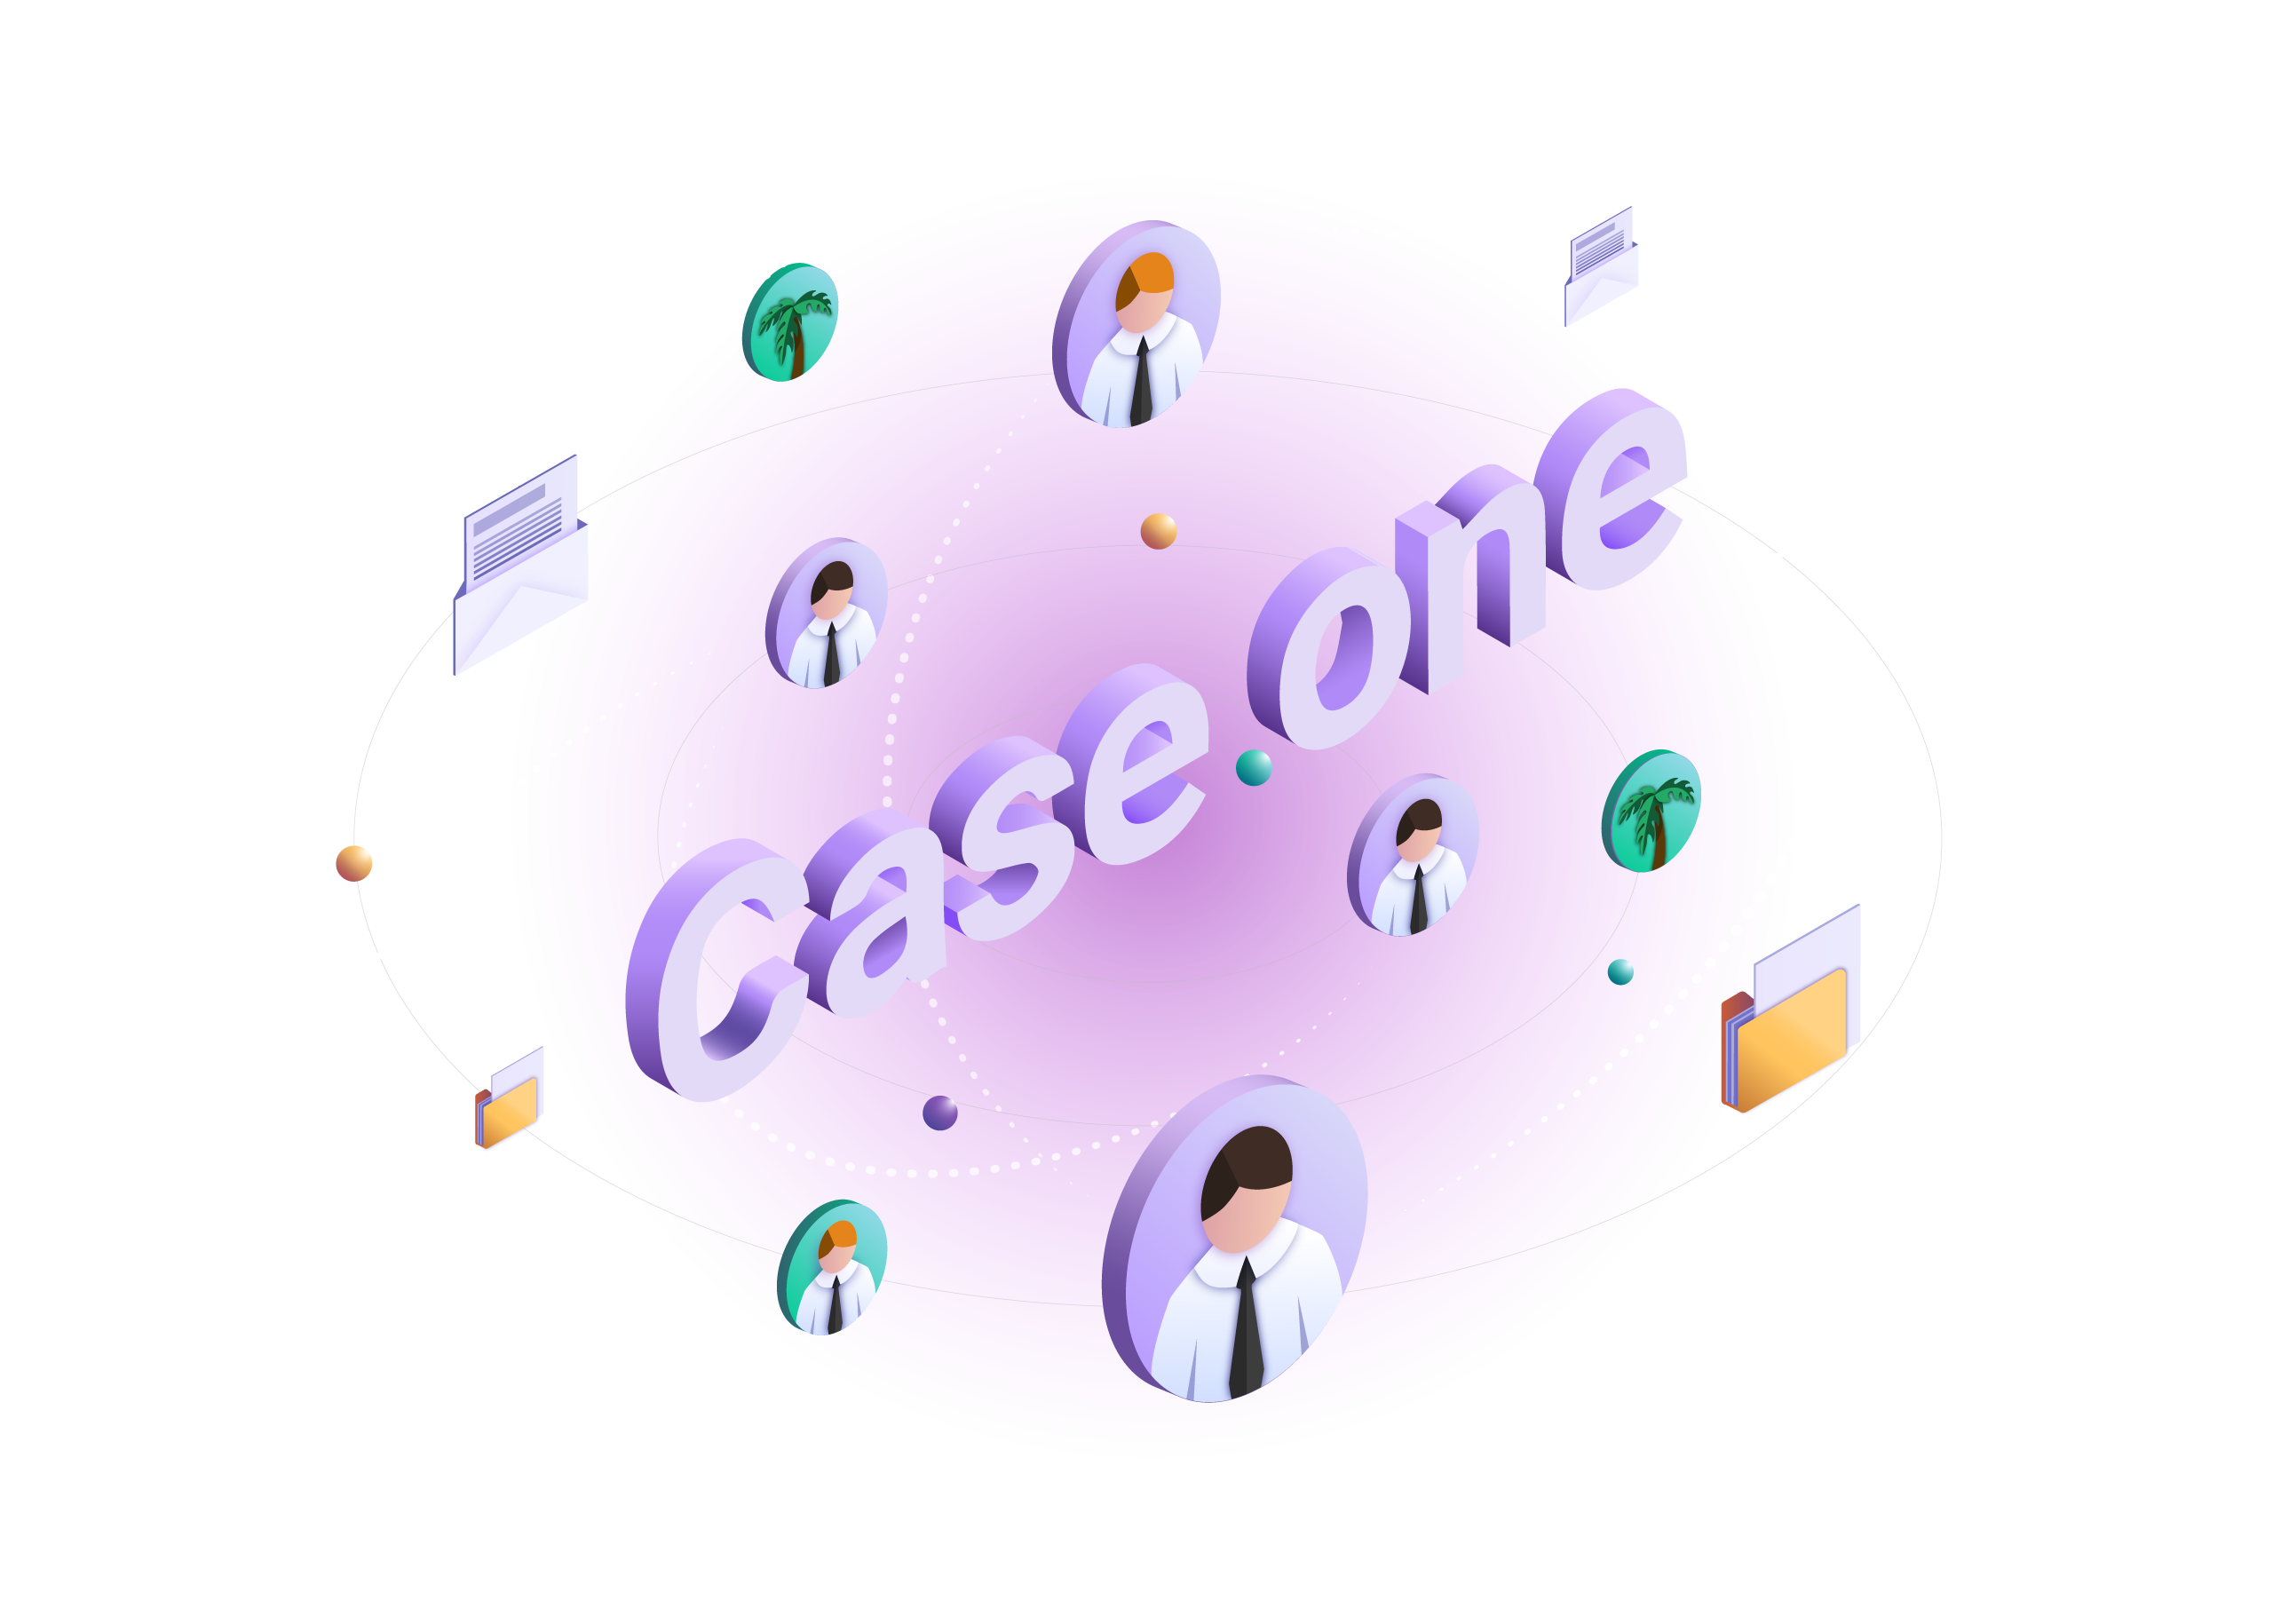 Case Learn More About The Company And The Team